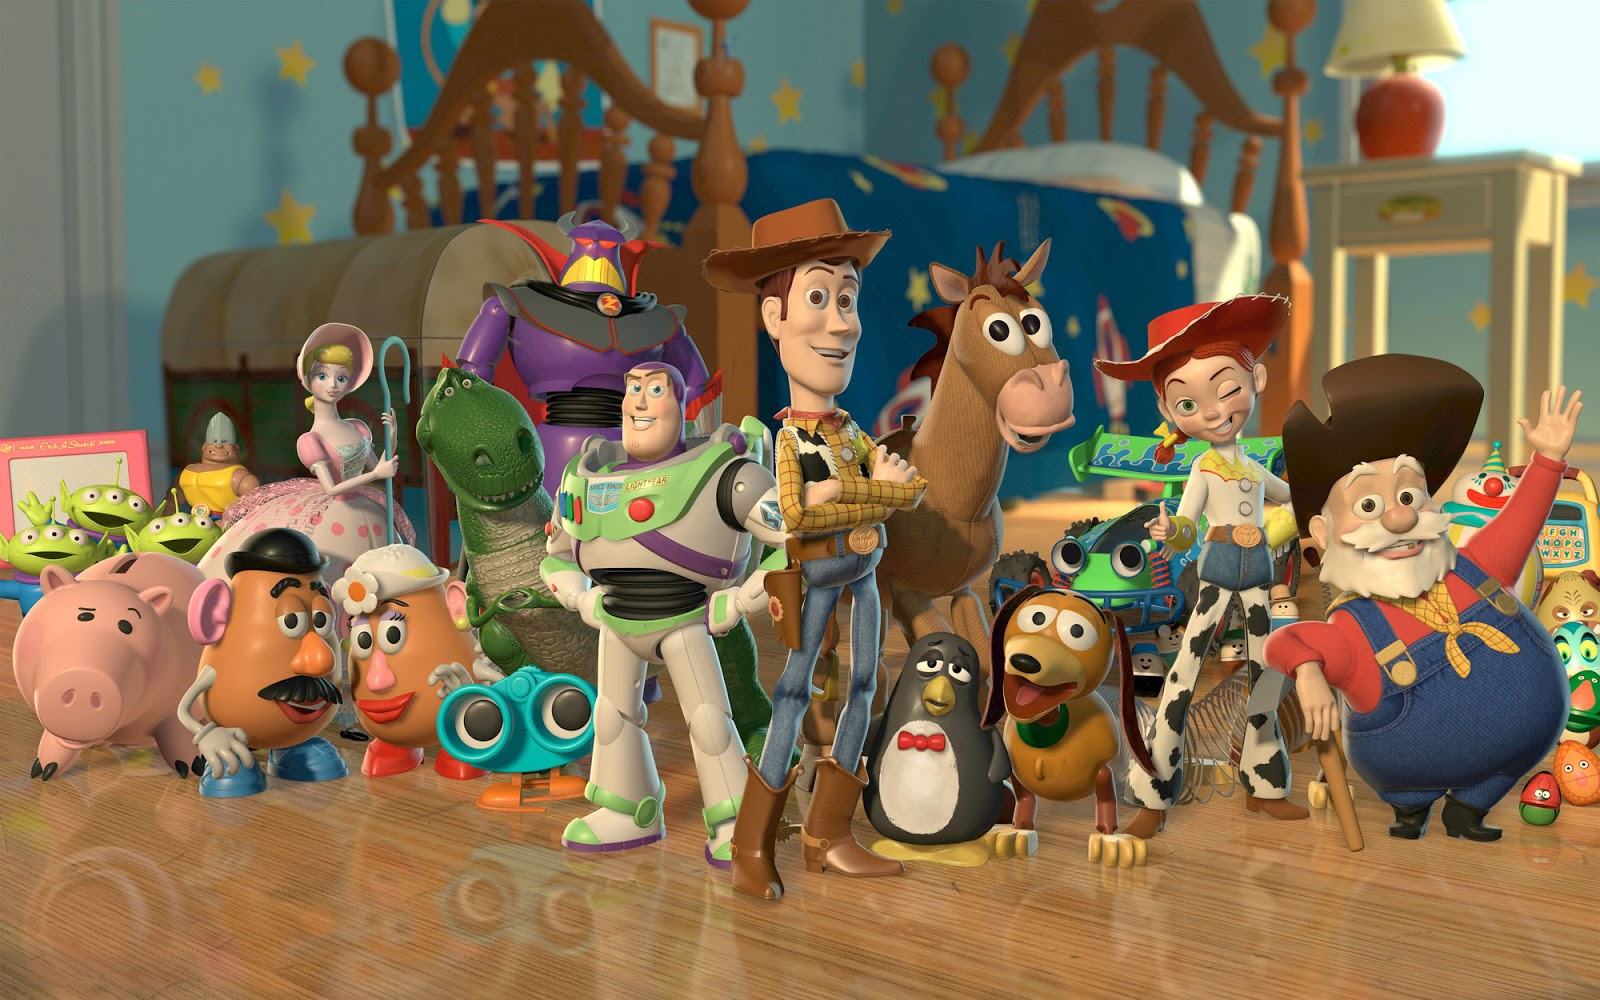 Top 10 Toy Story Toys That Need to be Made